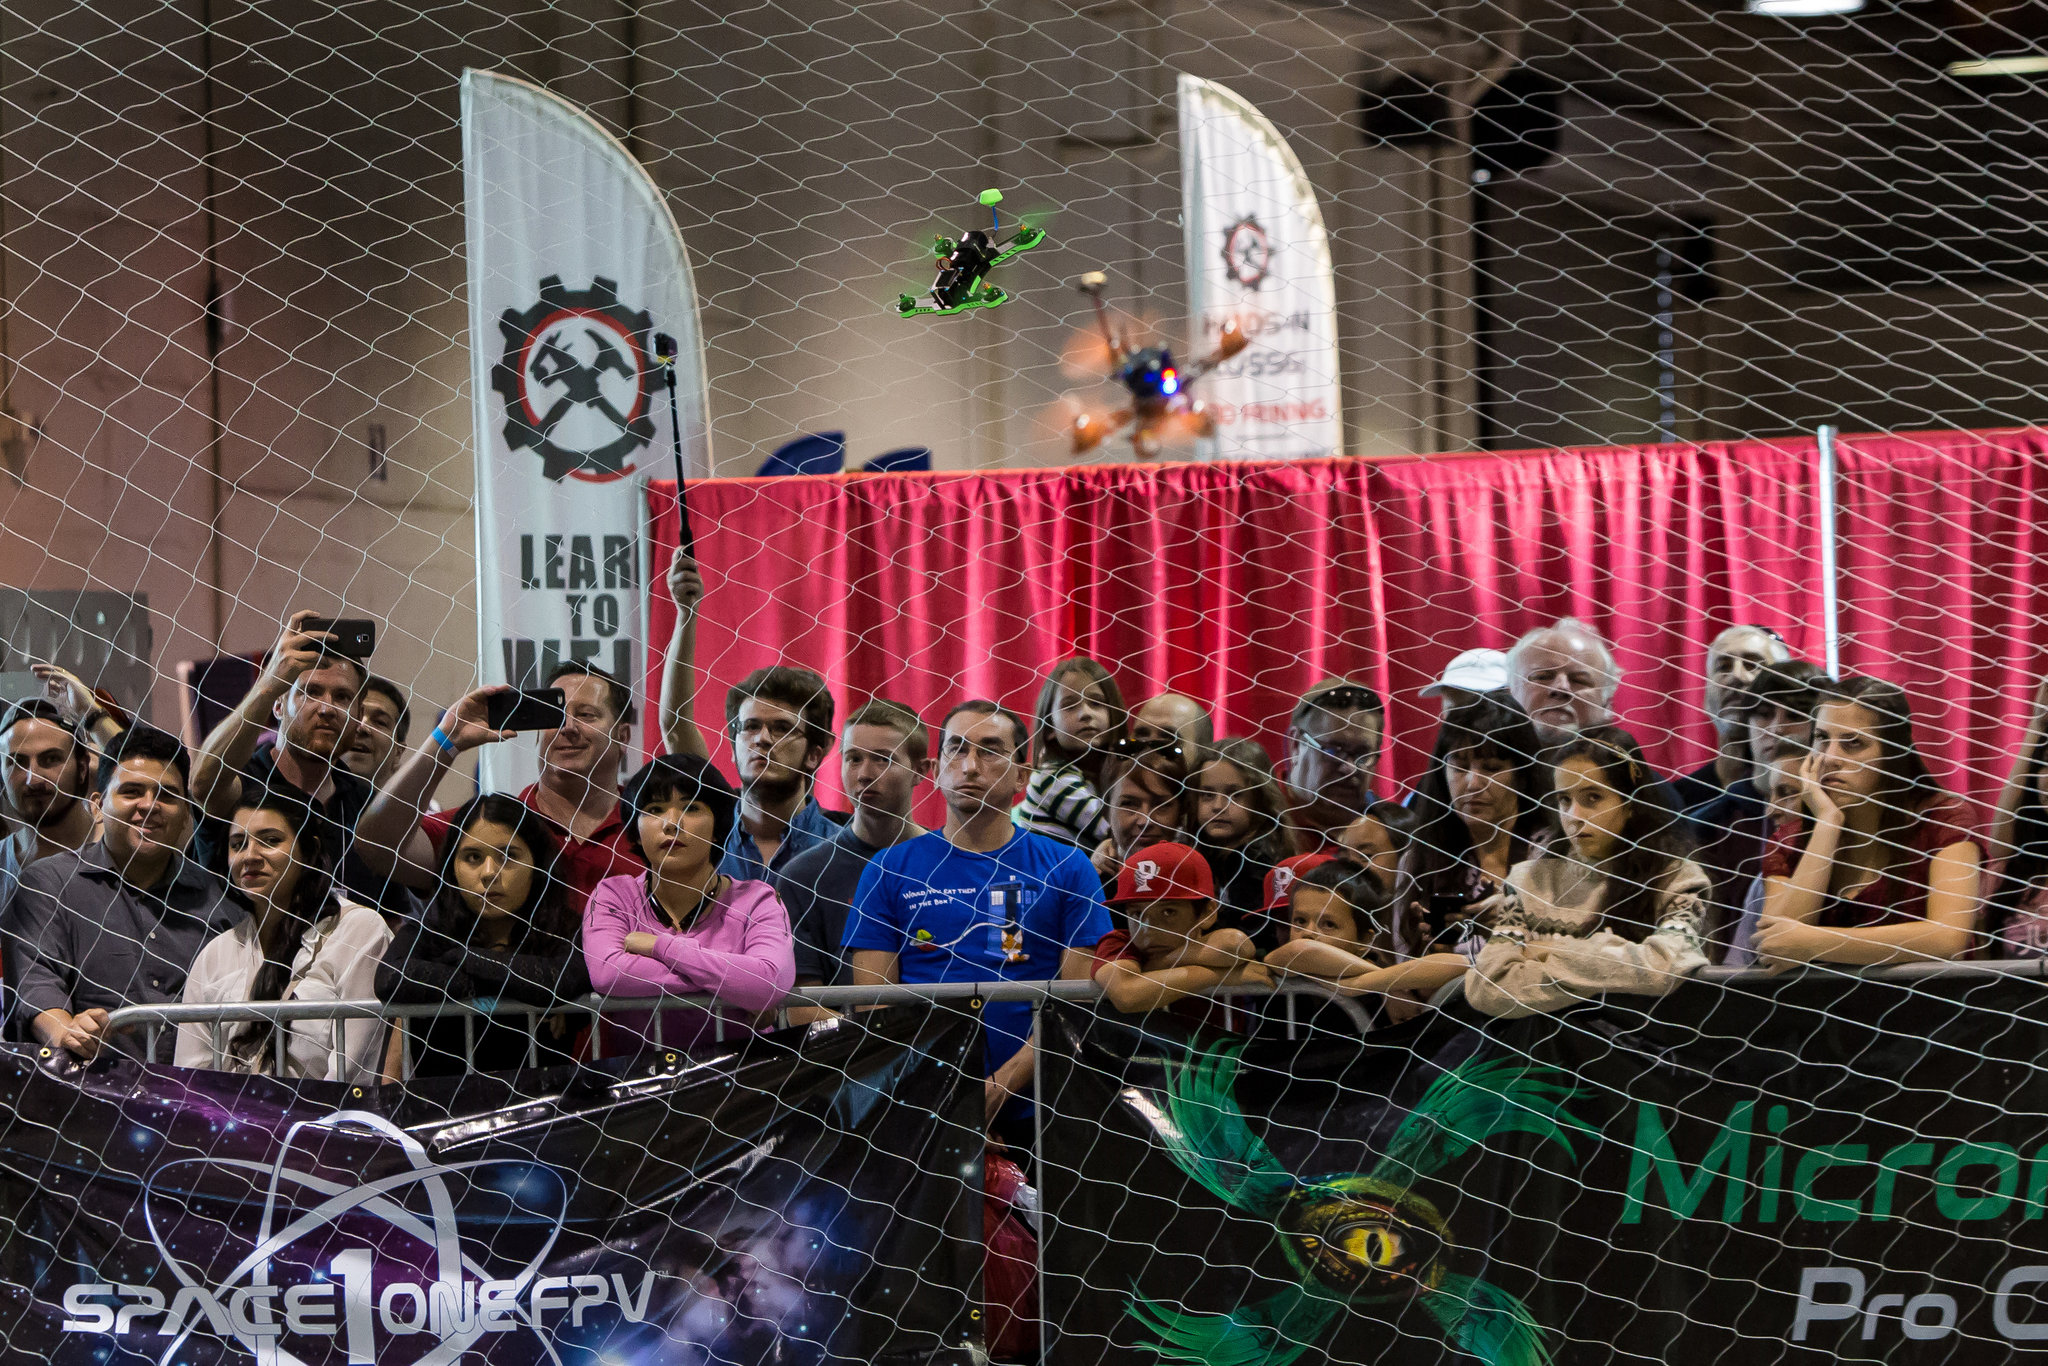 FPV race crowd